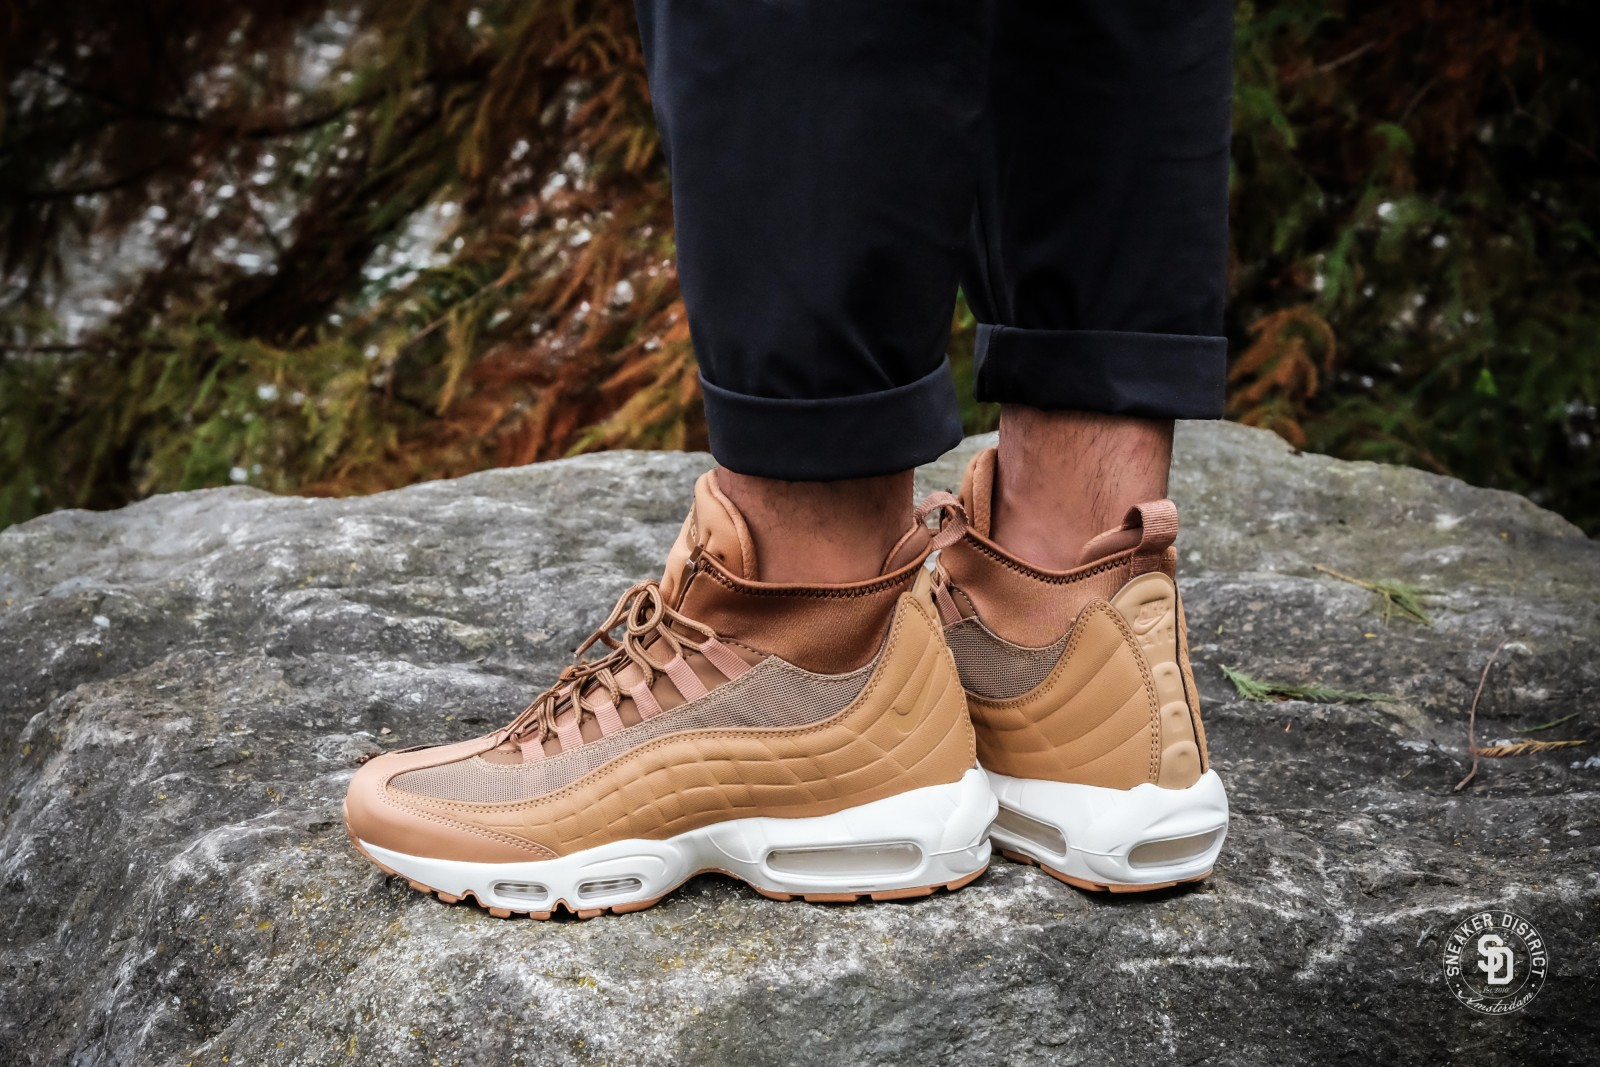 Nike Air Max 95 Sneakerboot FlaxAle Brown Sail sneakers bestellen voor dames | Sneaker District